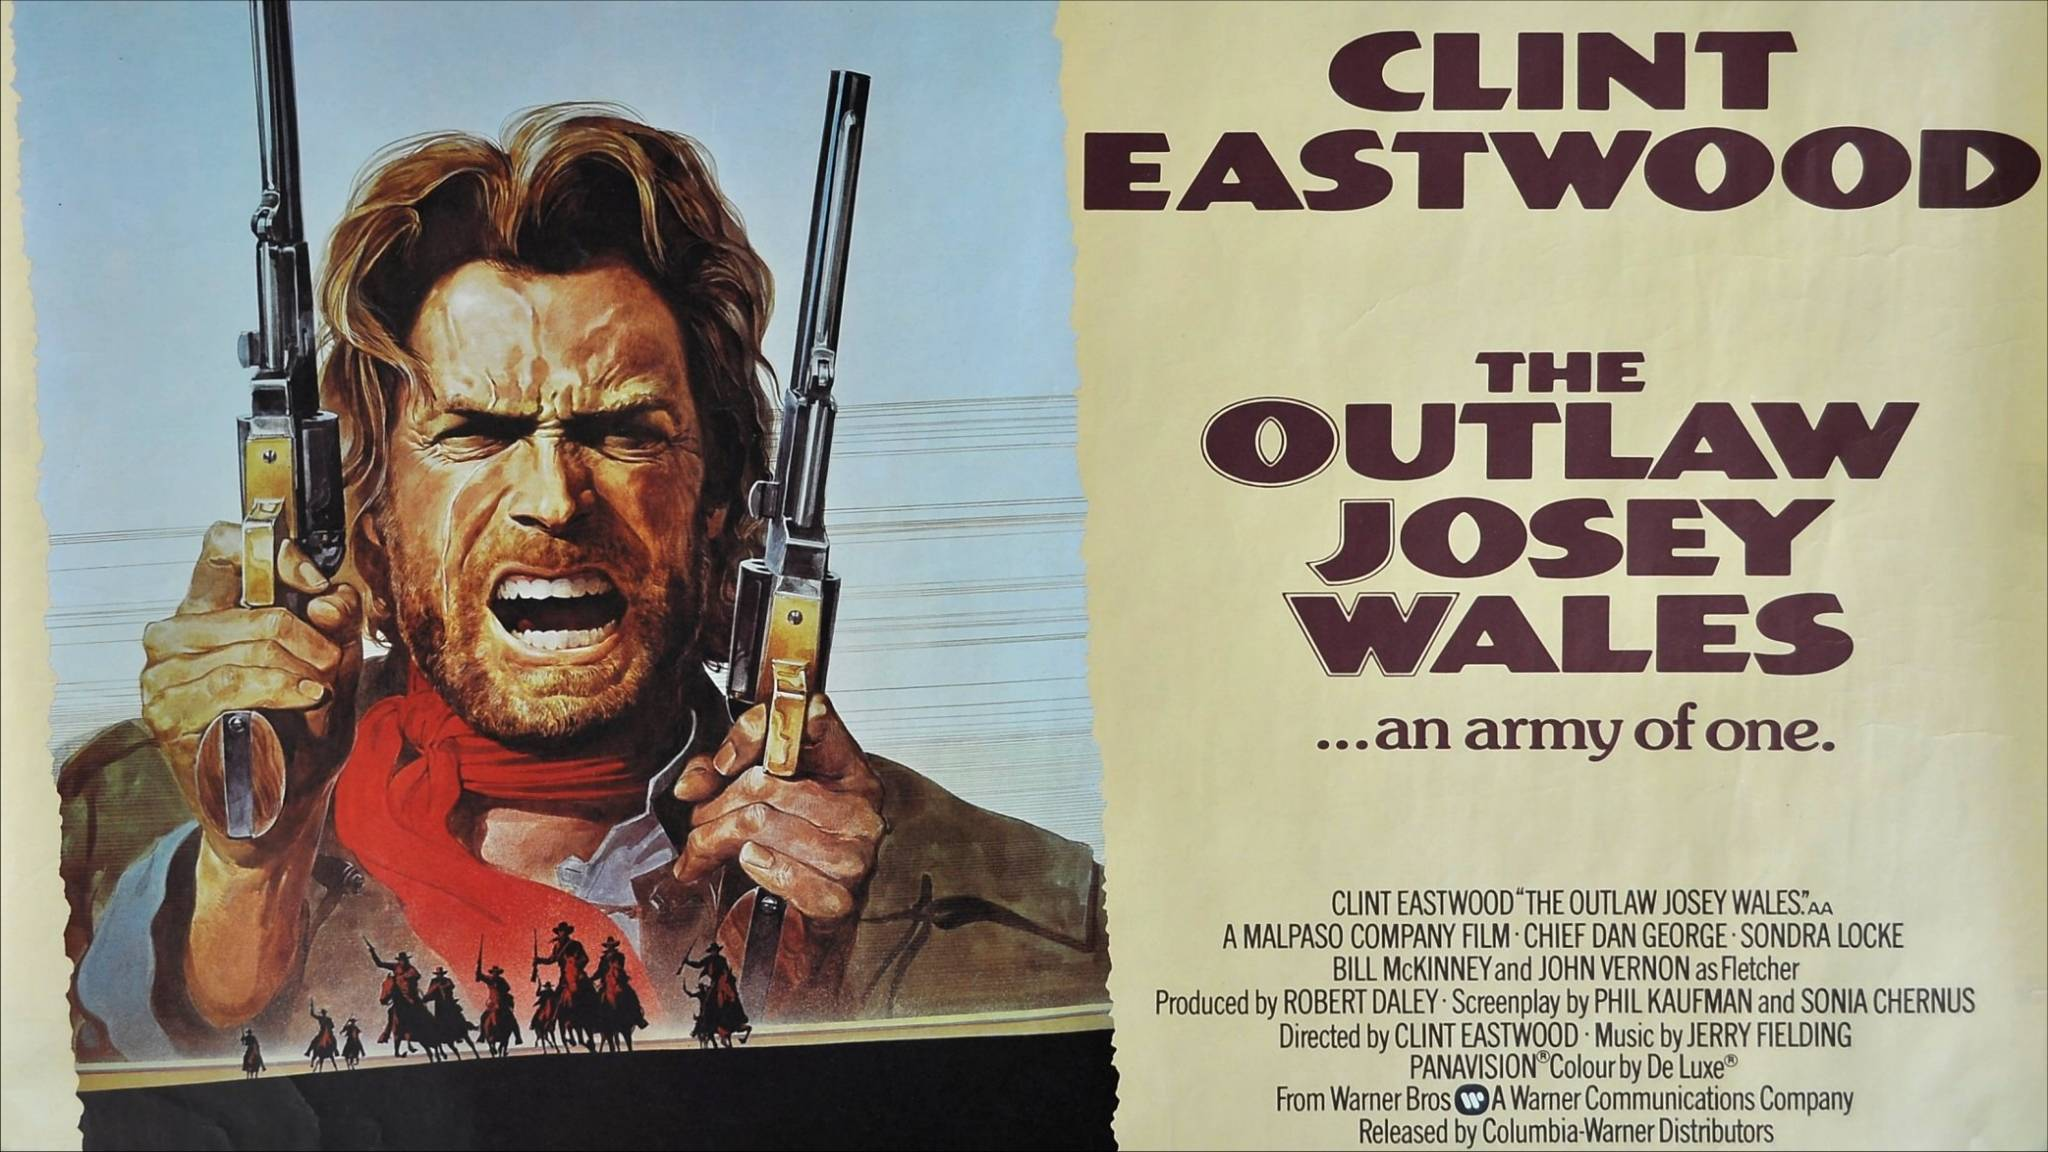 The Outlaw Josey Wales Poster Poster for The Outlaw Josey Wales 2048x1152